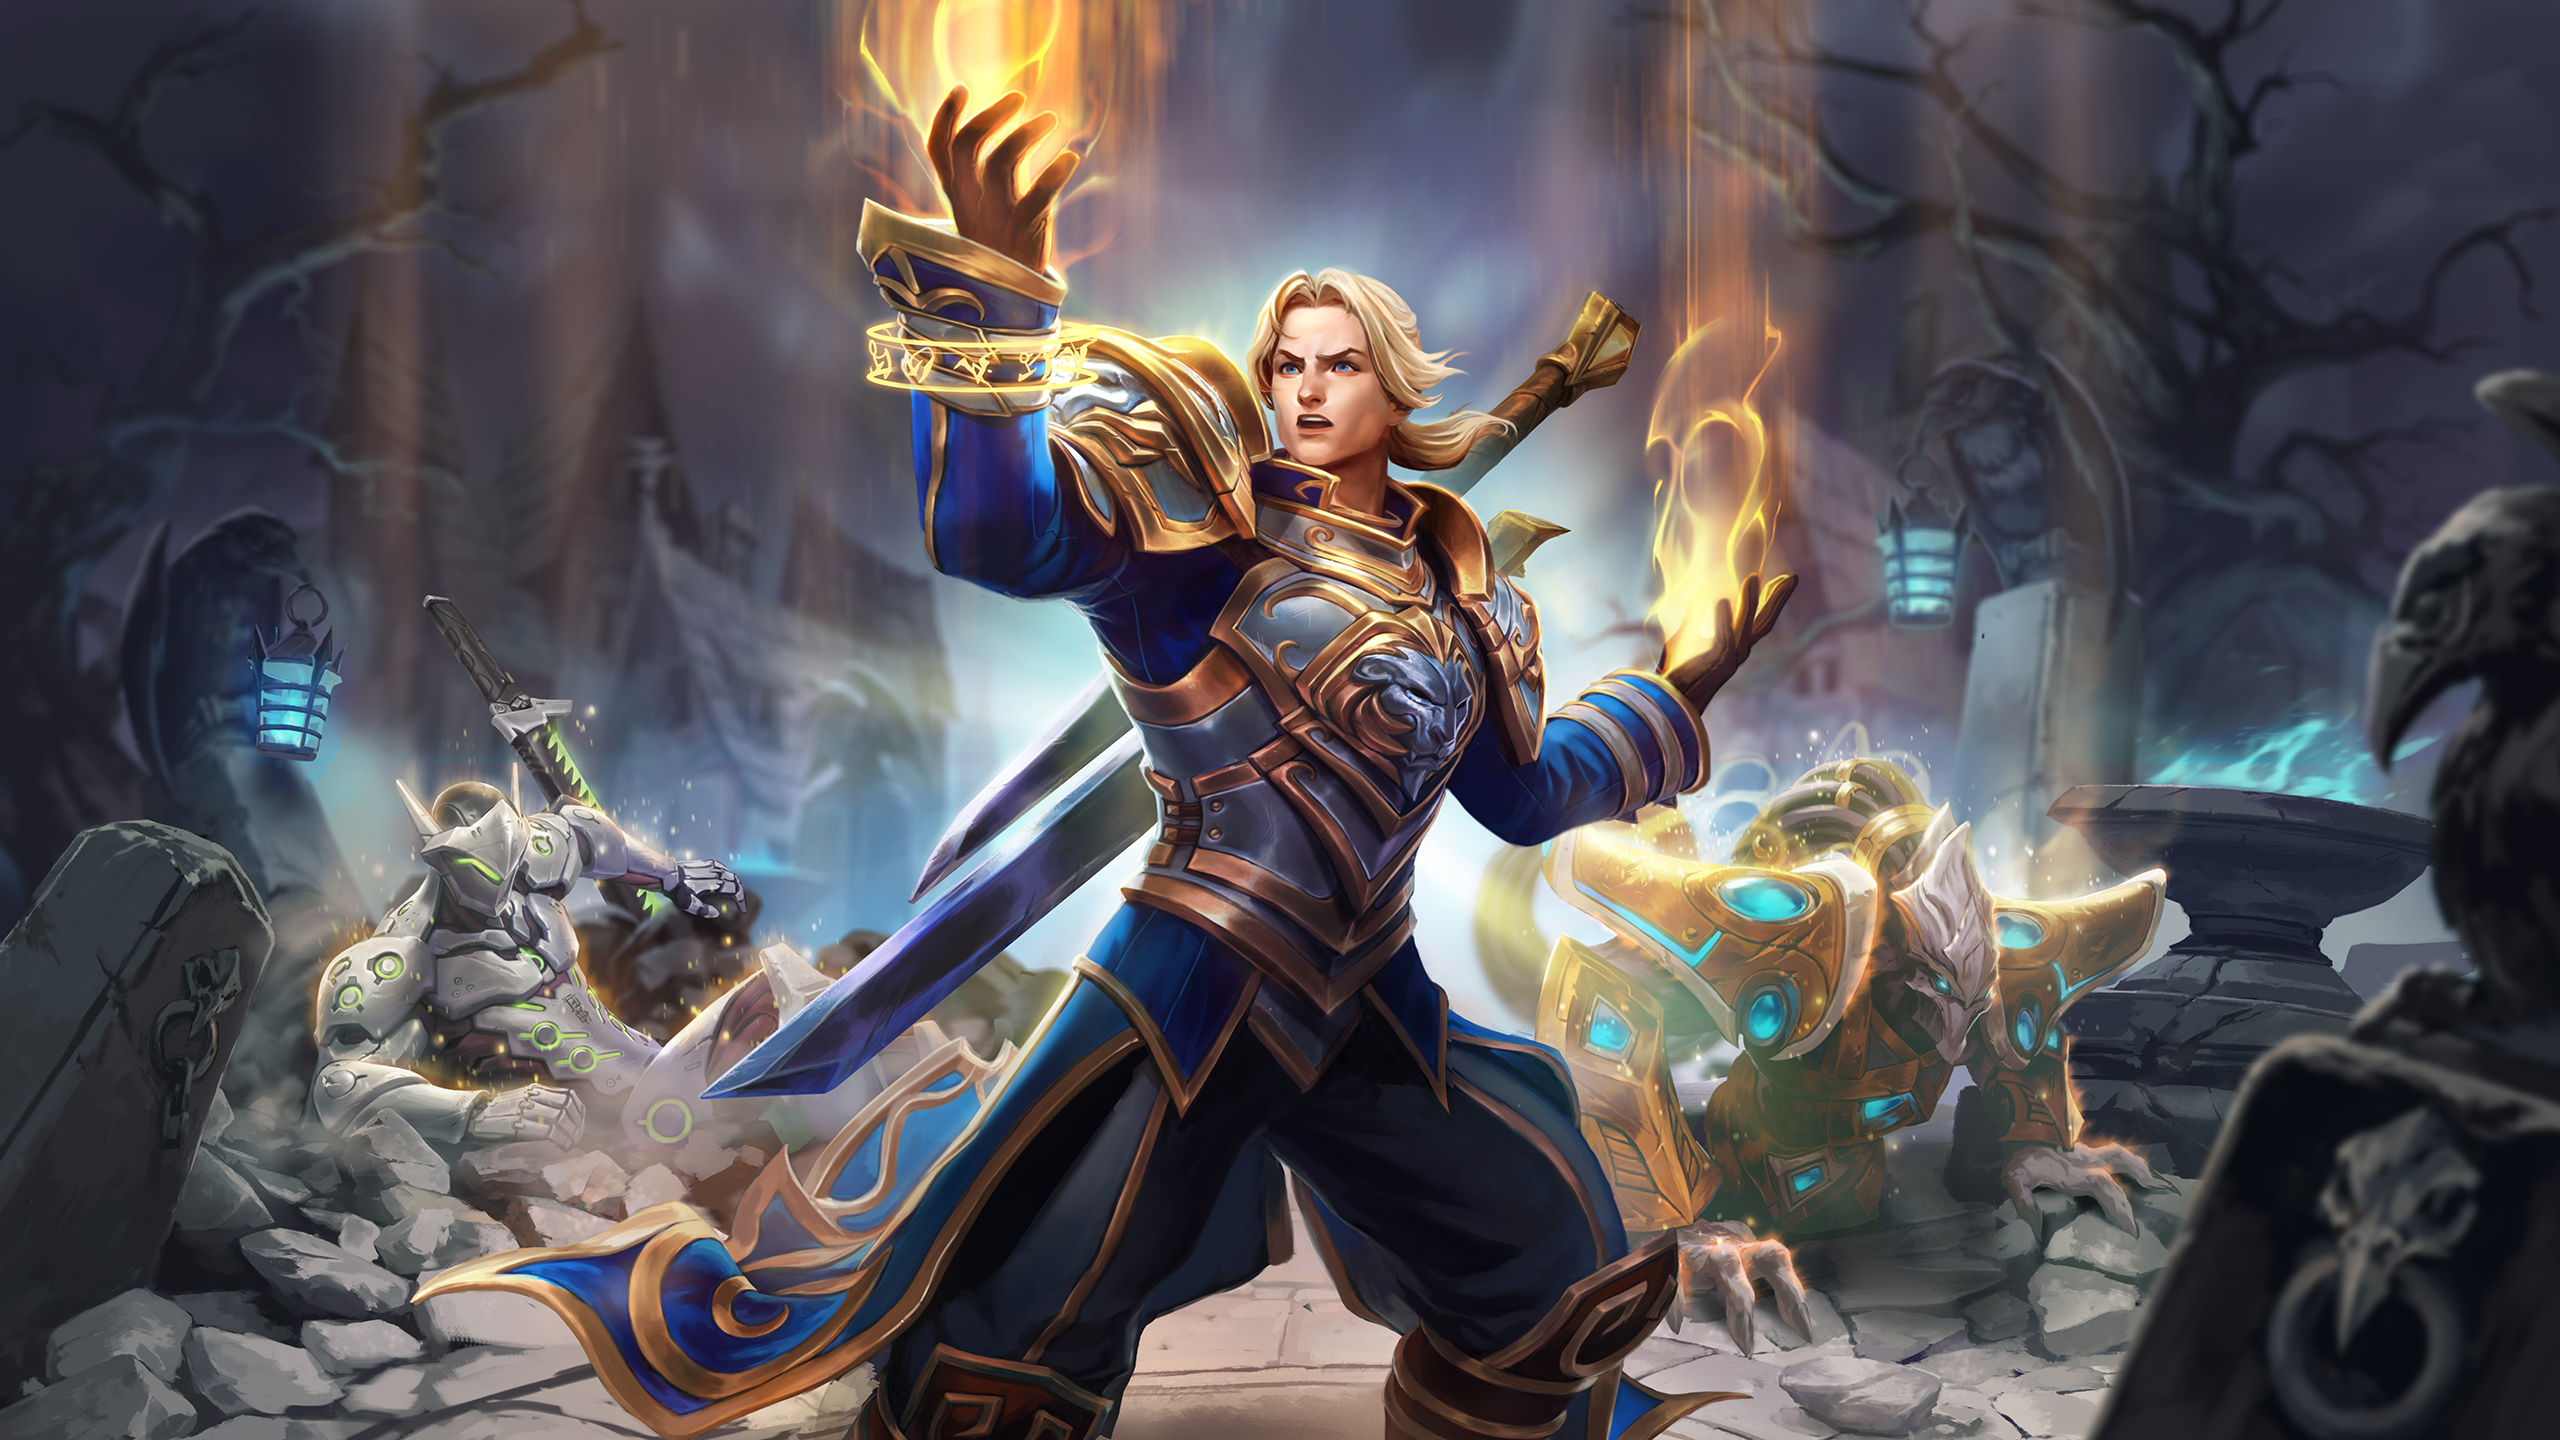 Imperius Anduin Qhira Deathwing And More Heroes Of The Storm 2019 In Review Heroes Of The Storm Blizzard News While she searches, she gets by as a. heroes of the storm 2019 in review